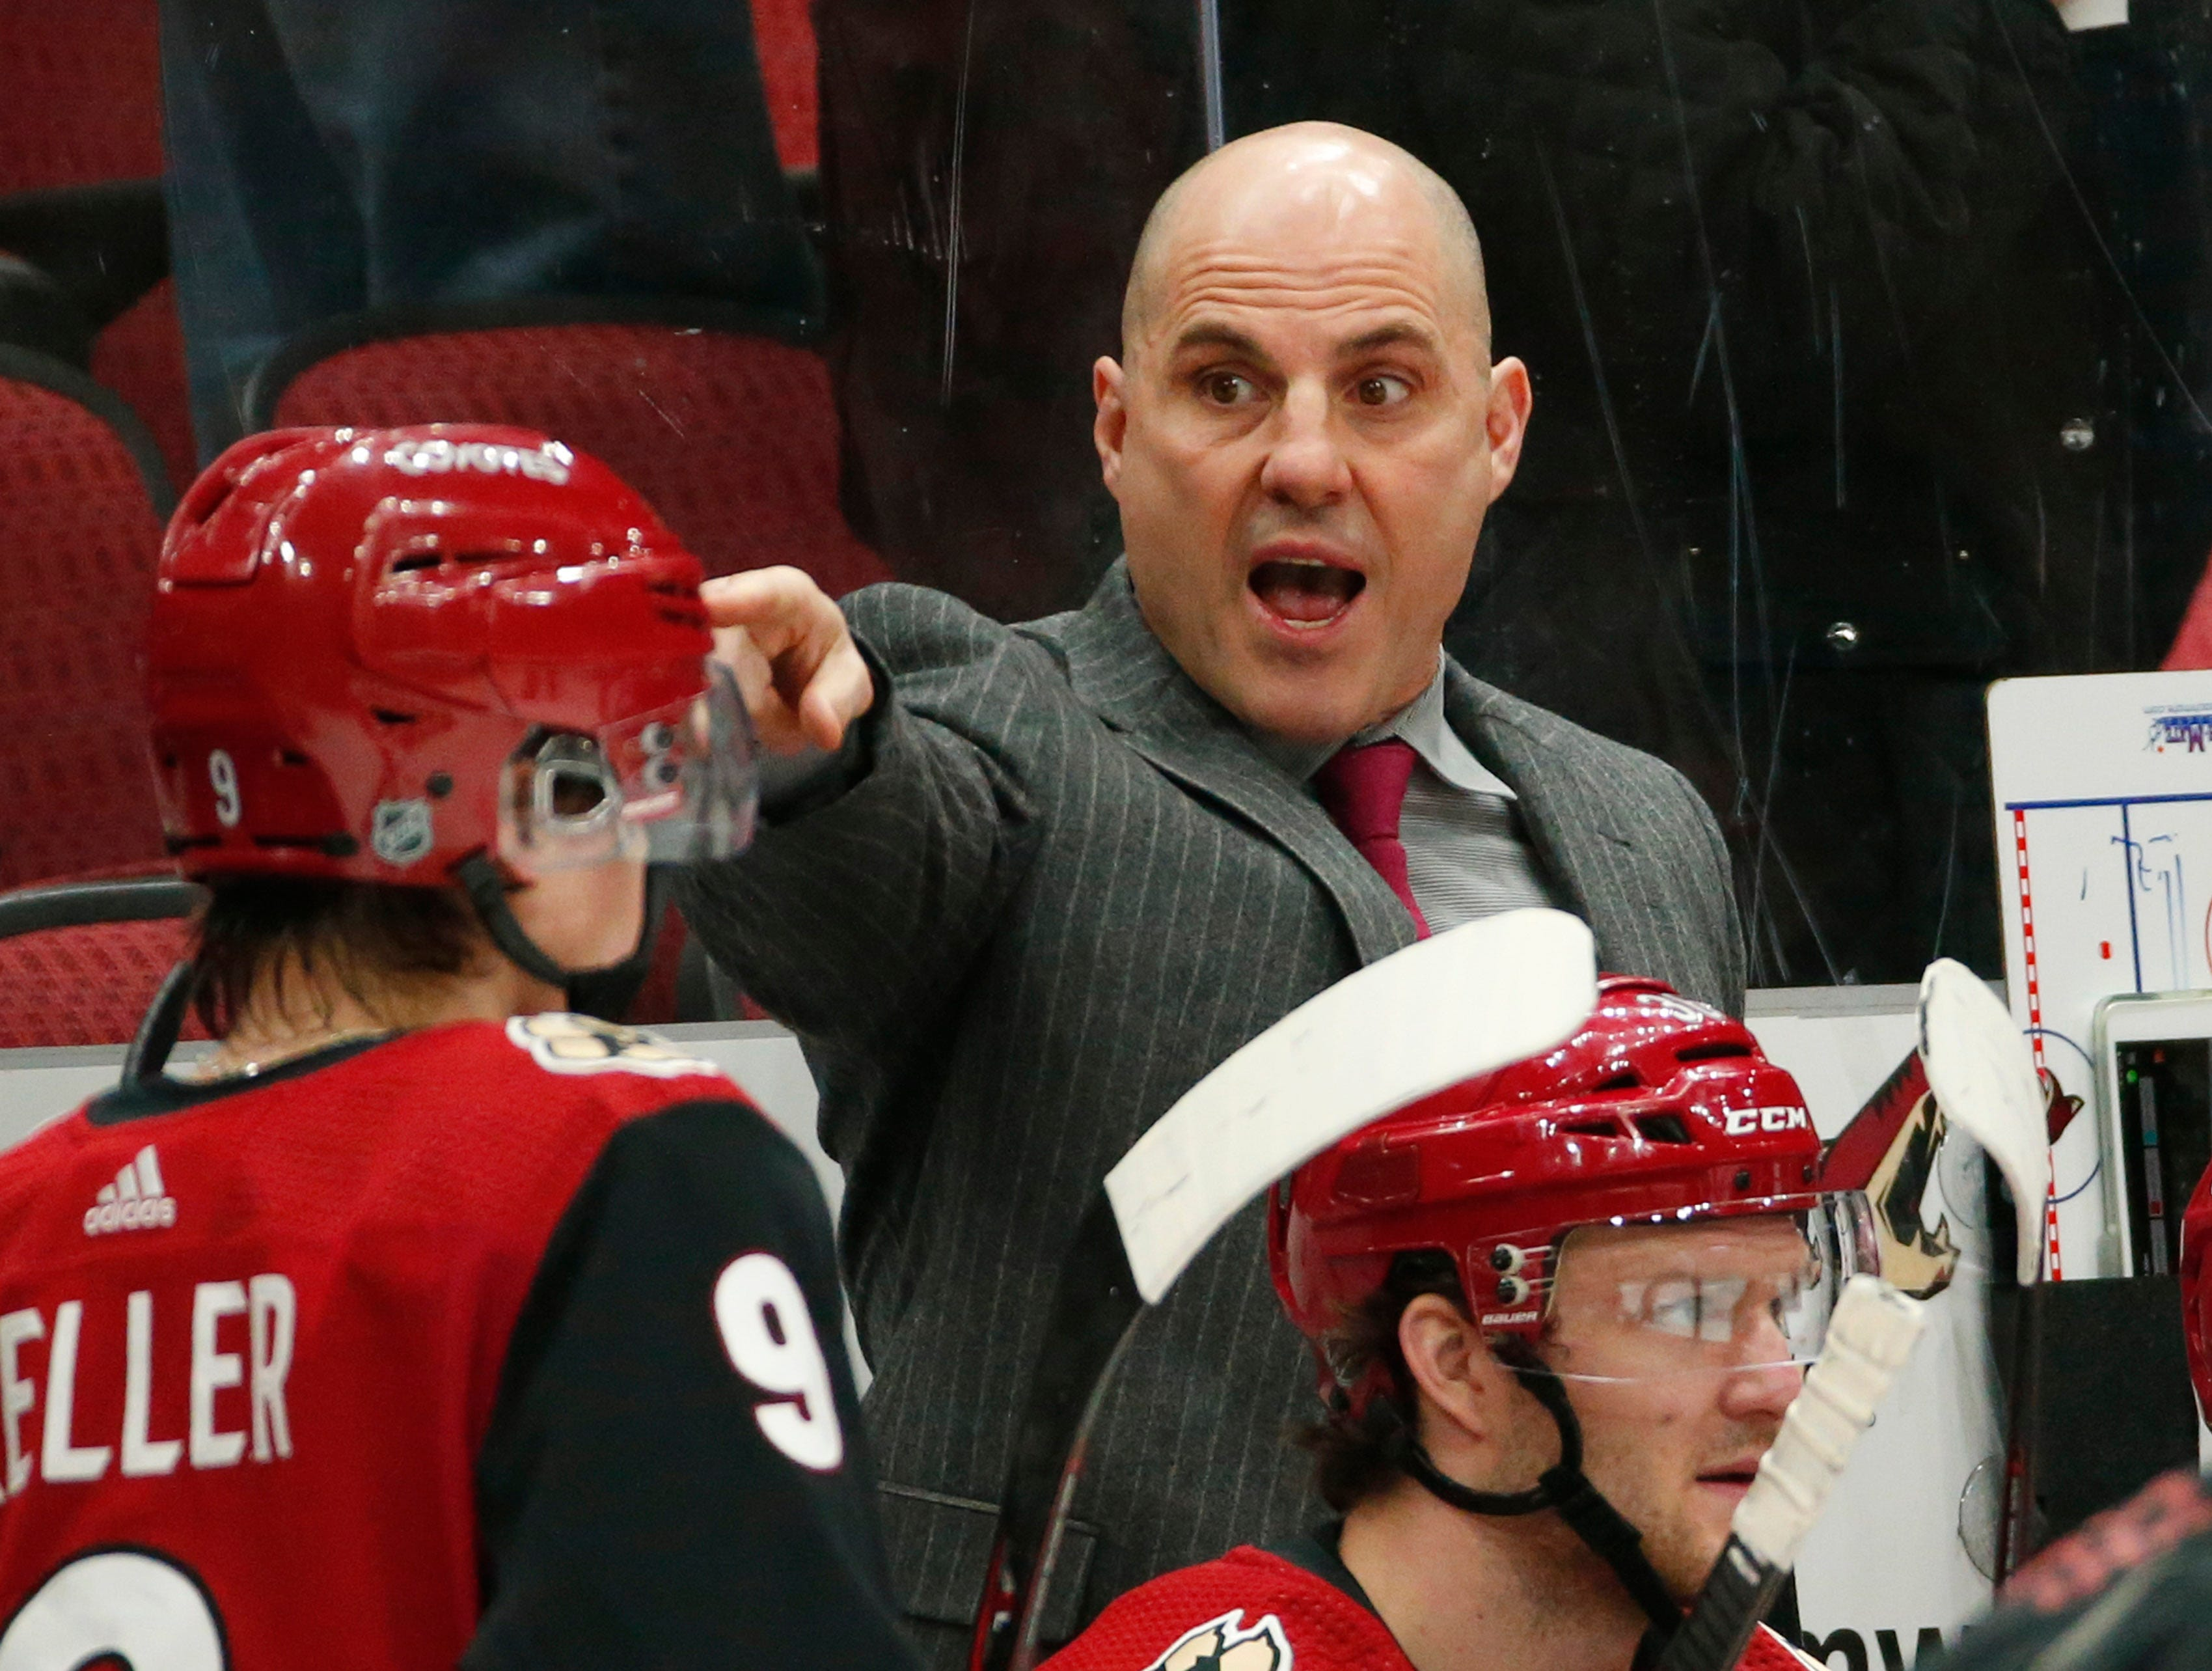 Arizona Coyotes head coach Rick Tocchet argues for a call against the Edmonton Oilers during the second period in Glendale January 2, 2019.